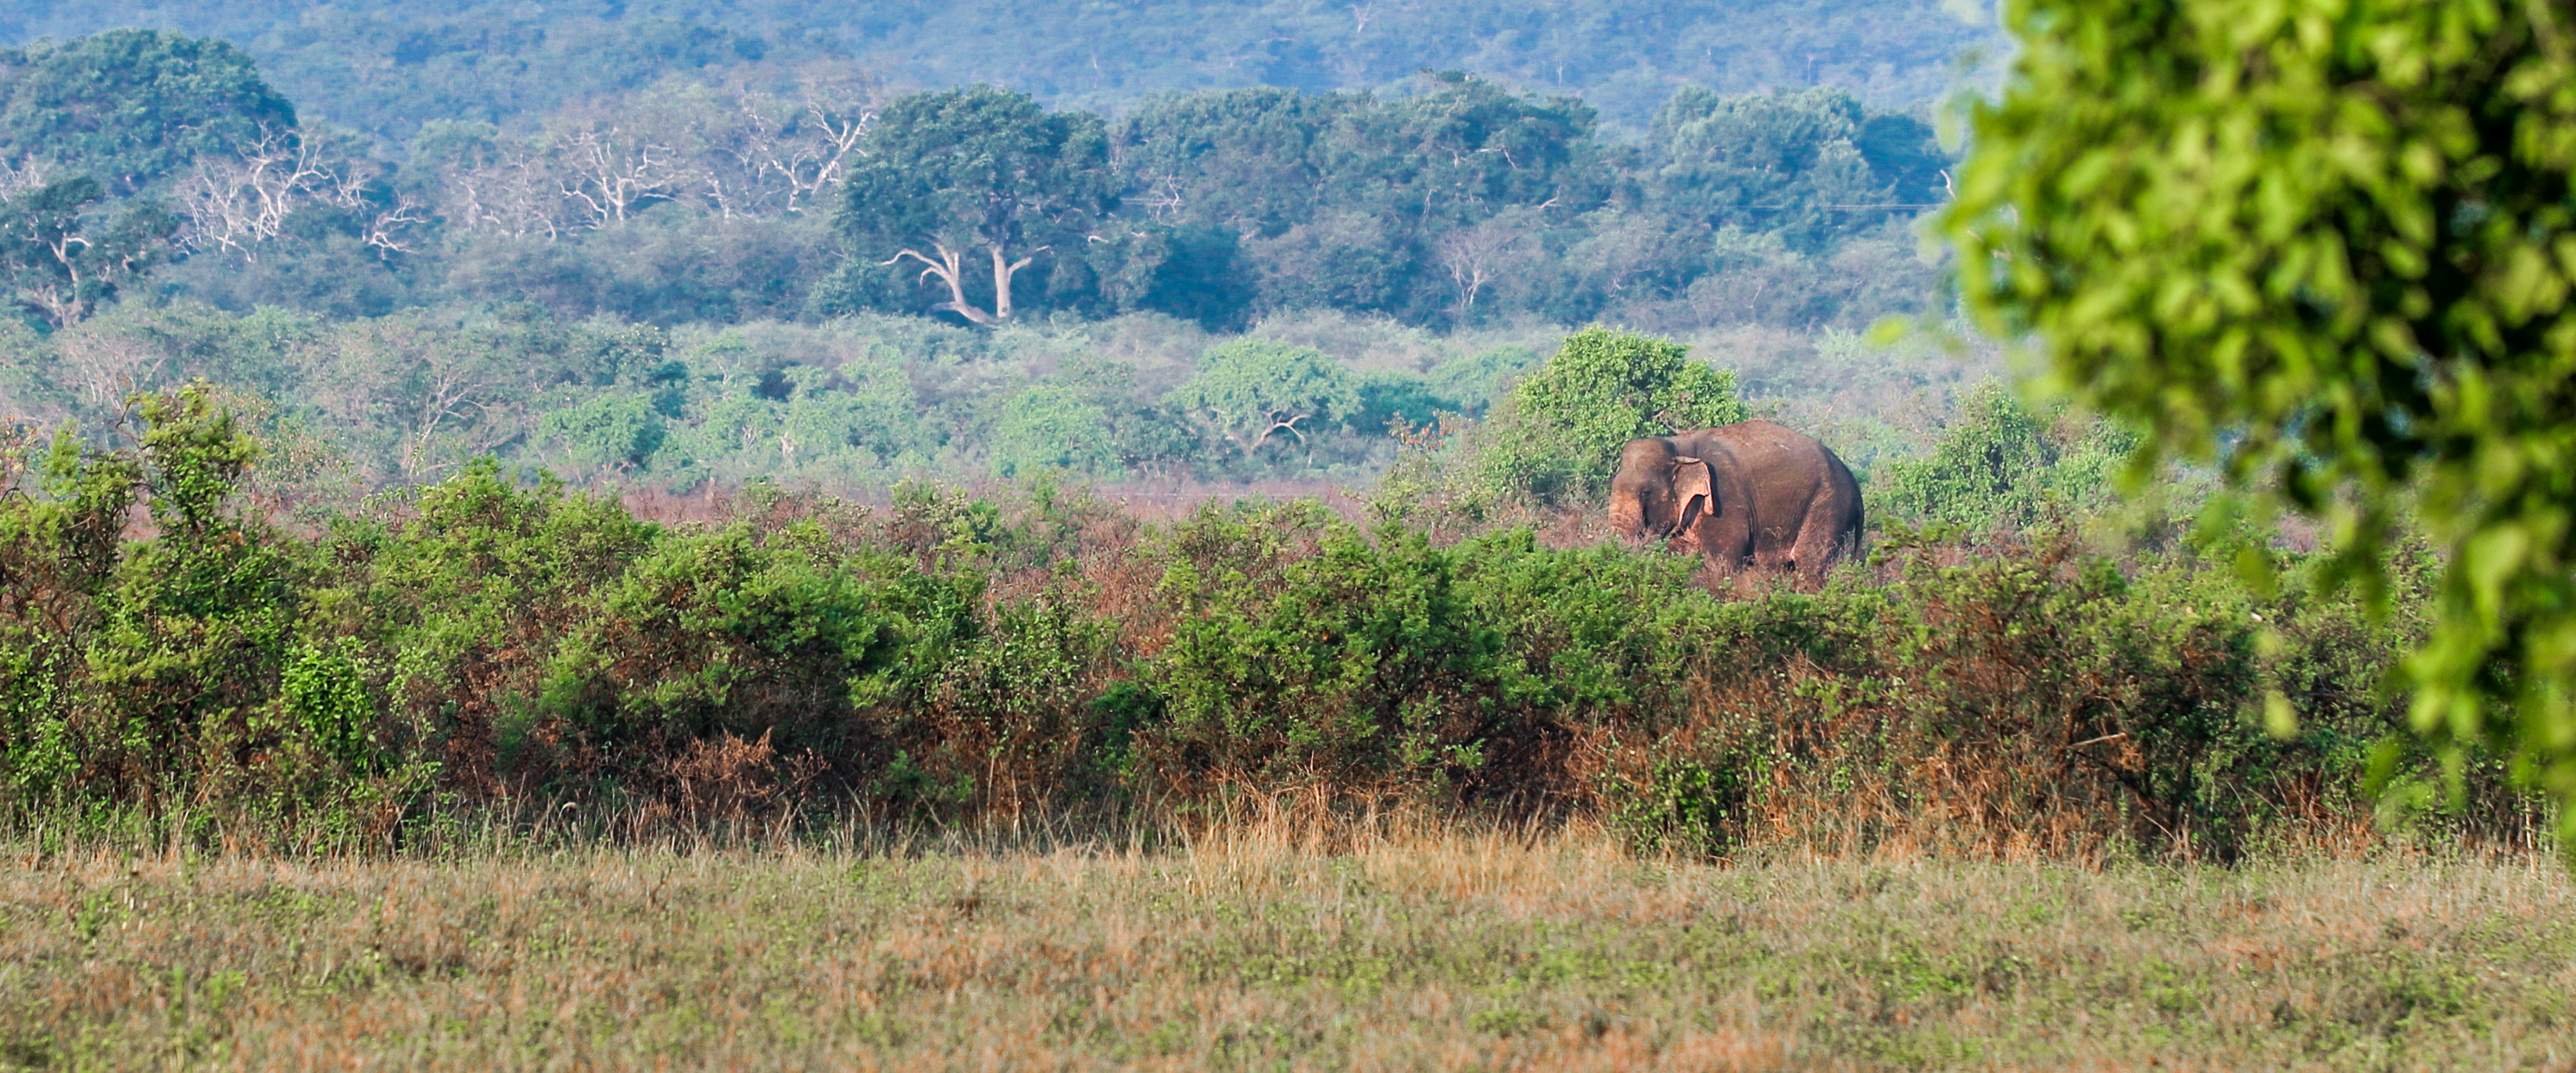 Elephant at Illiya